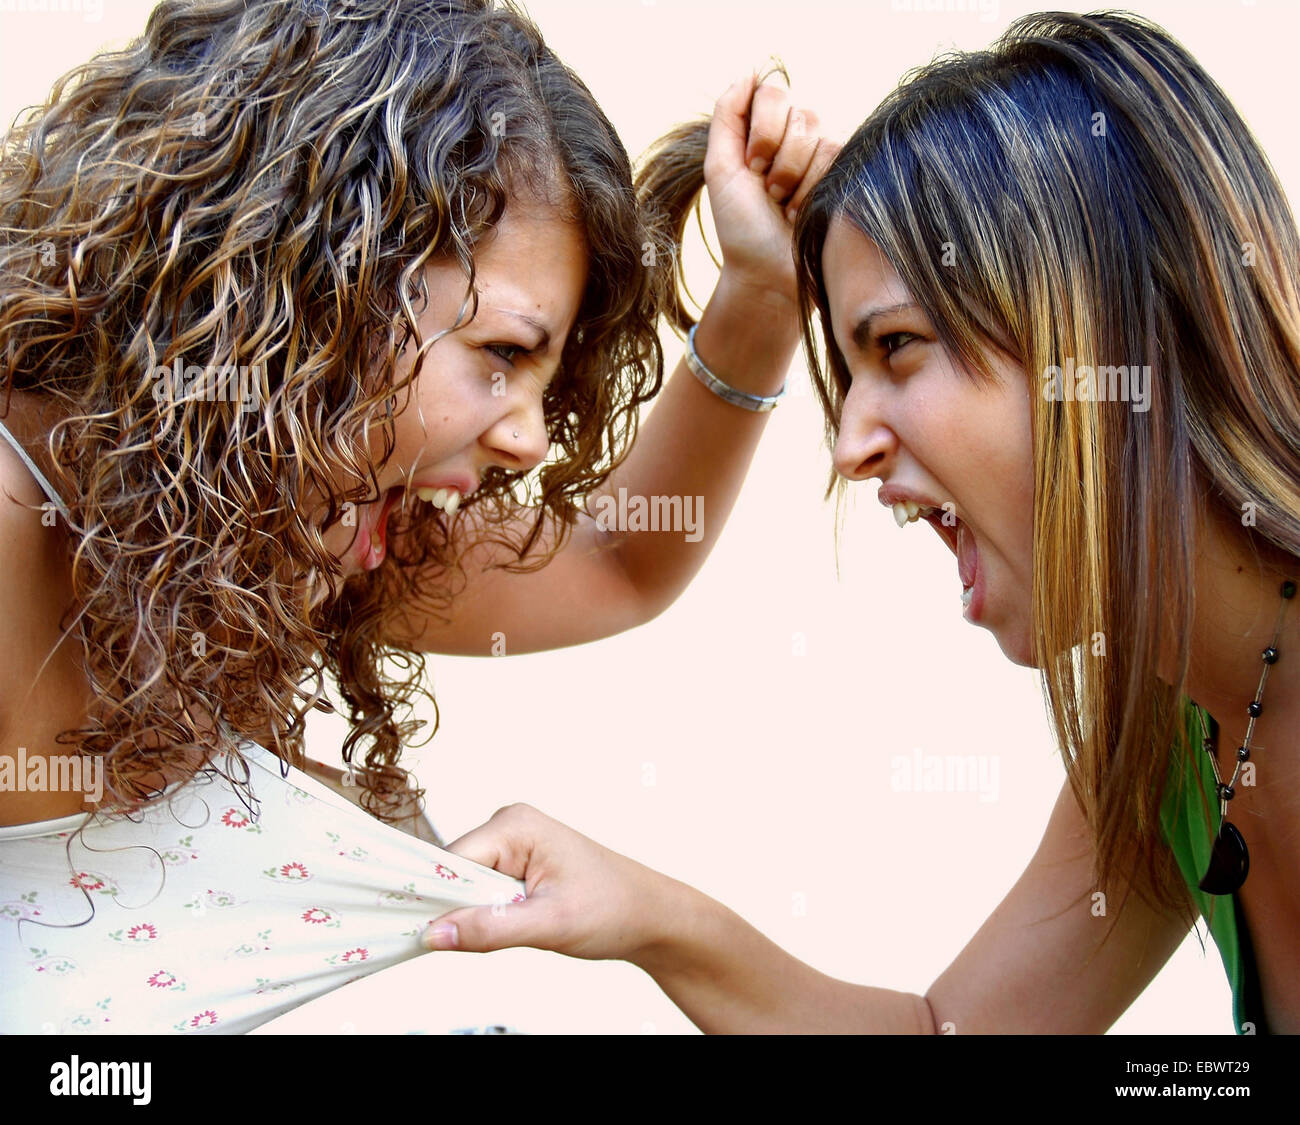 two young women face to face turn violent - Stock Image